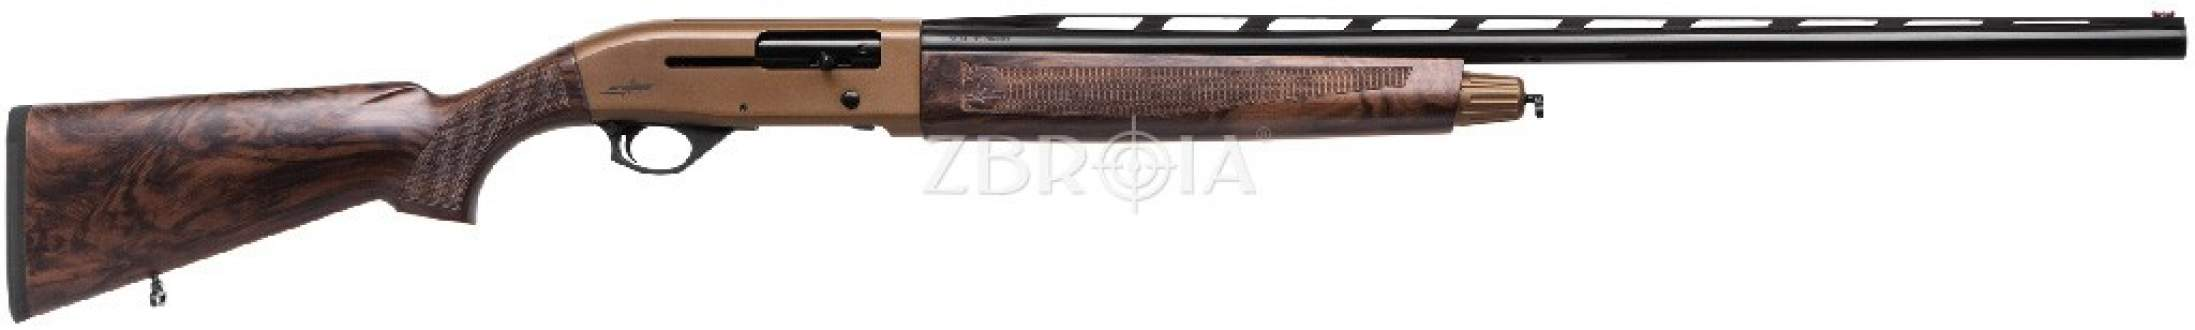 Ружье Armsan MMXVI Bronze Walnut High Rib кал. 12/76